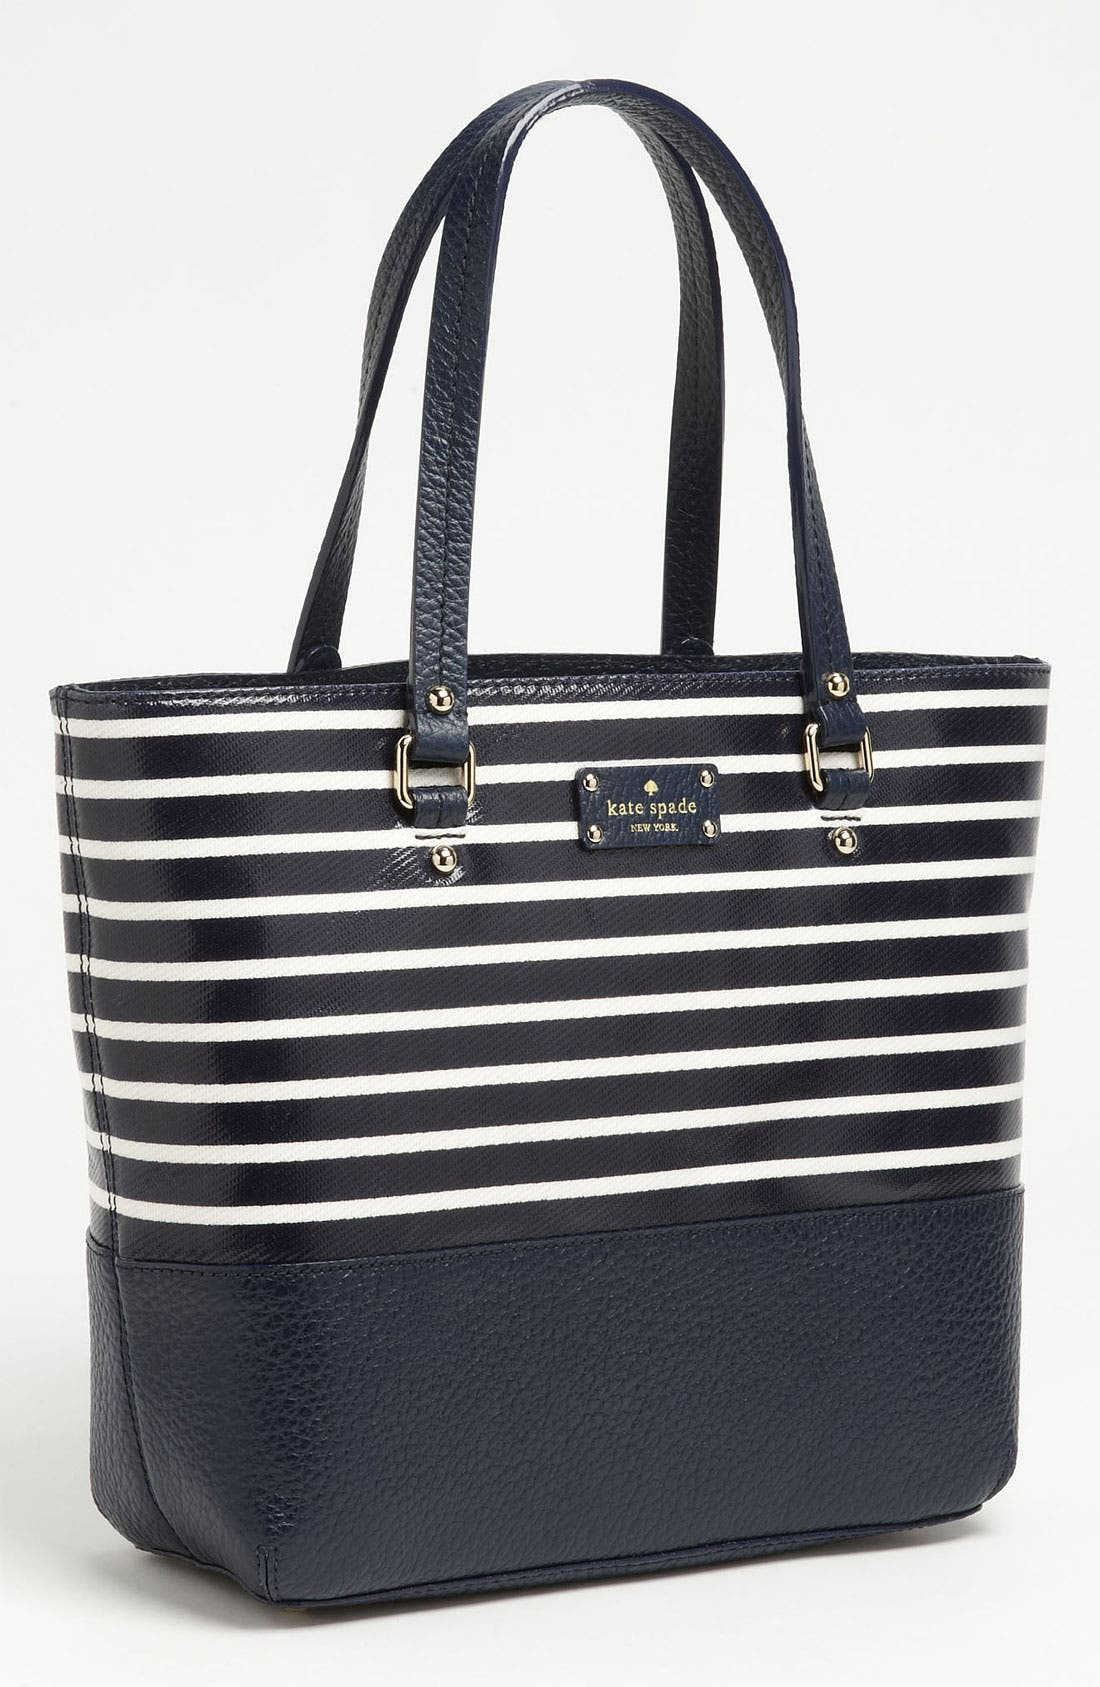 Alternate Image 1 Selected - kate spade new york 'grove court - abuela' tote